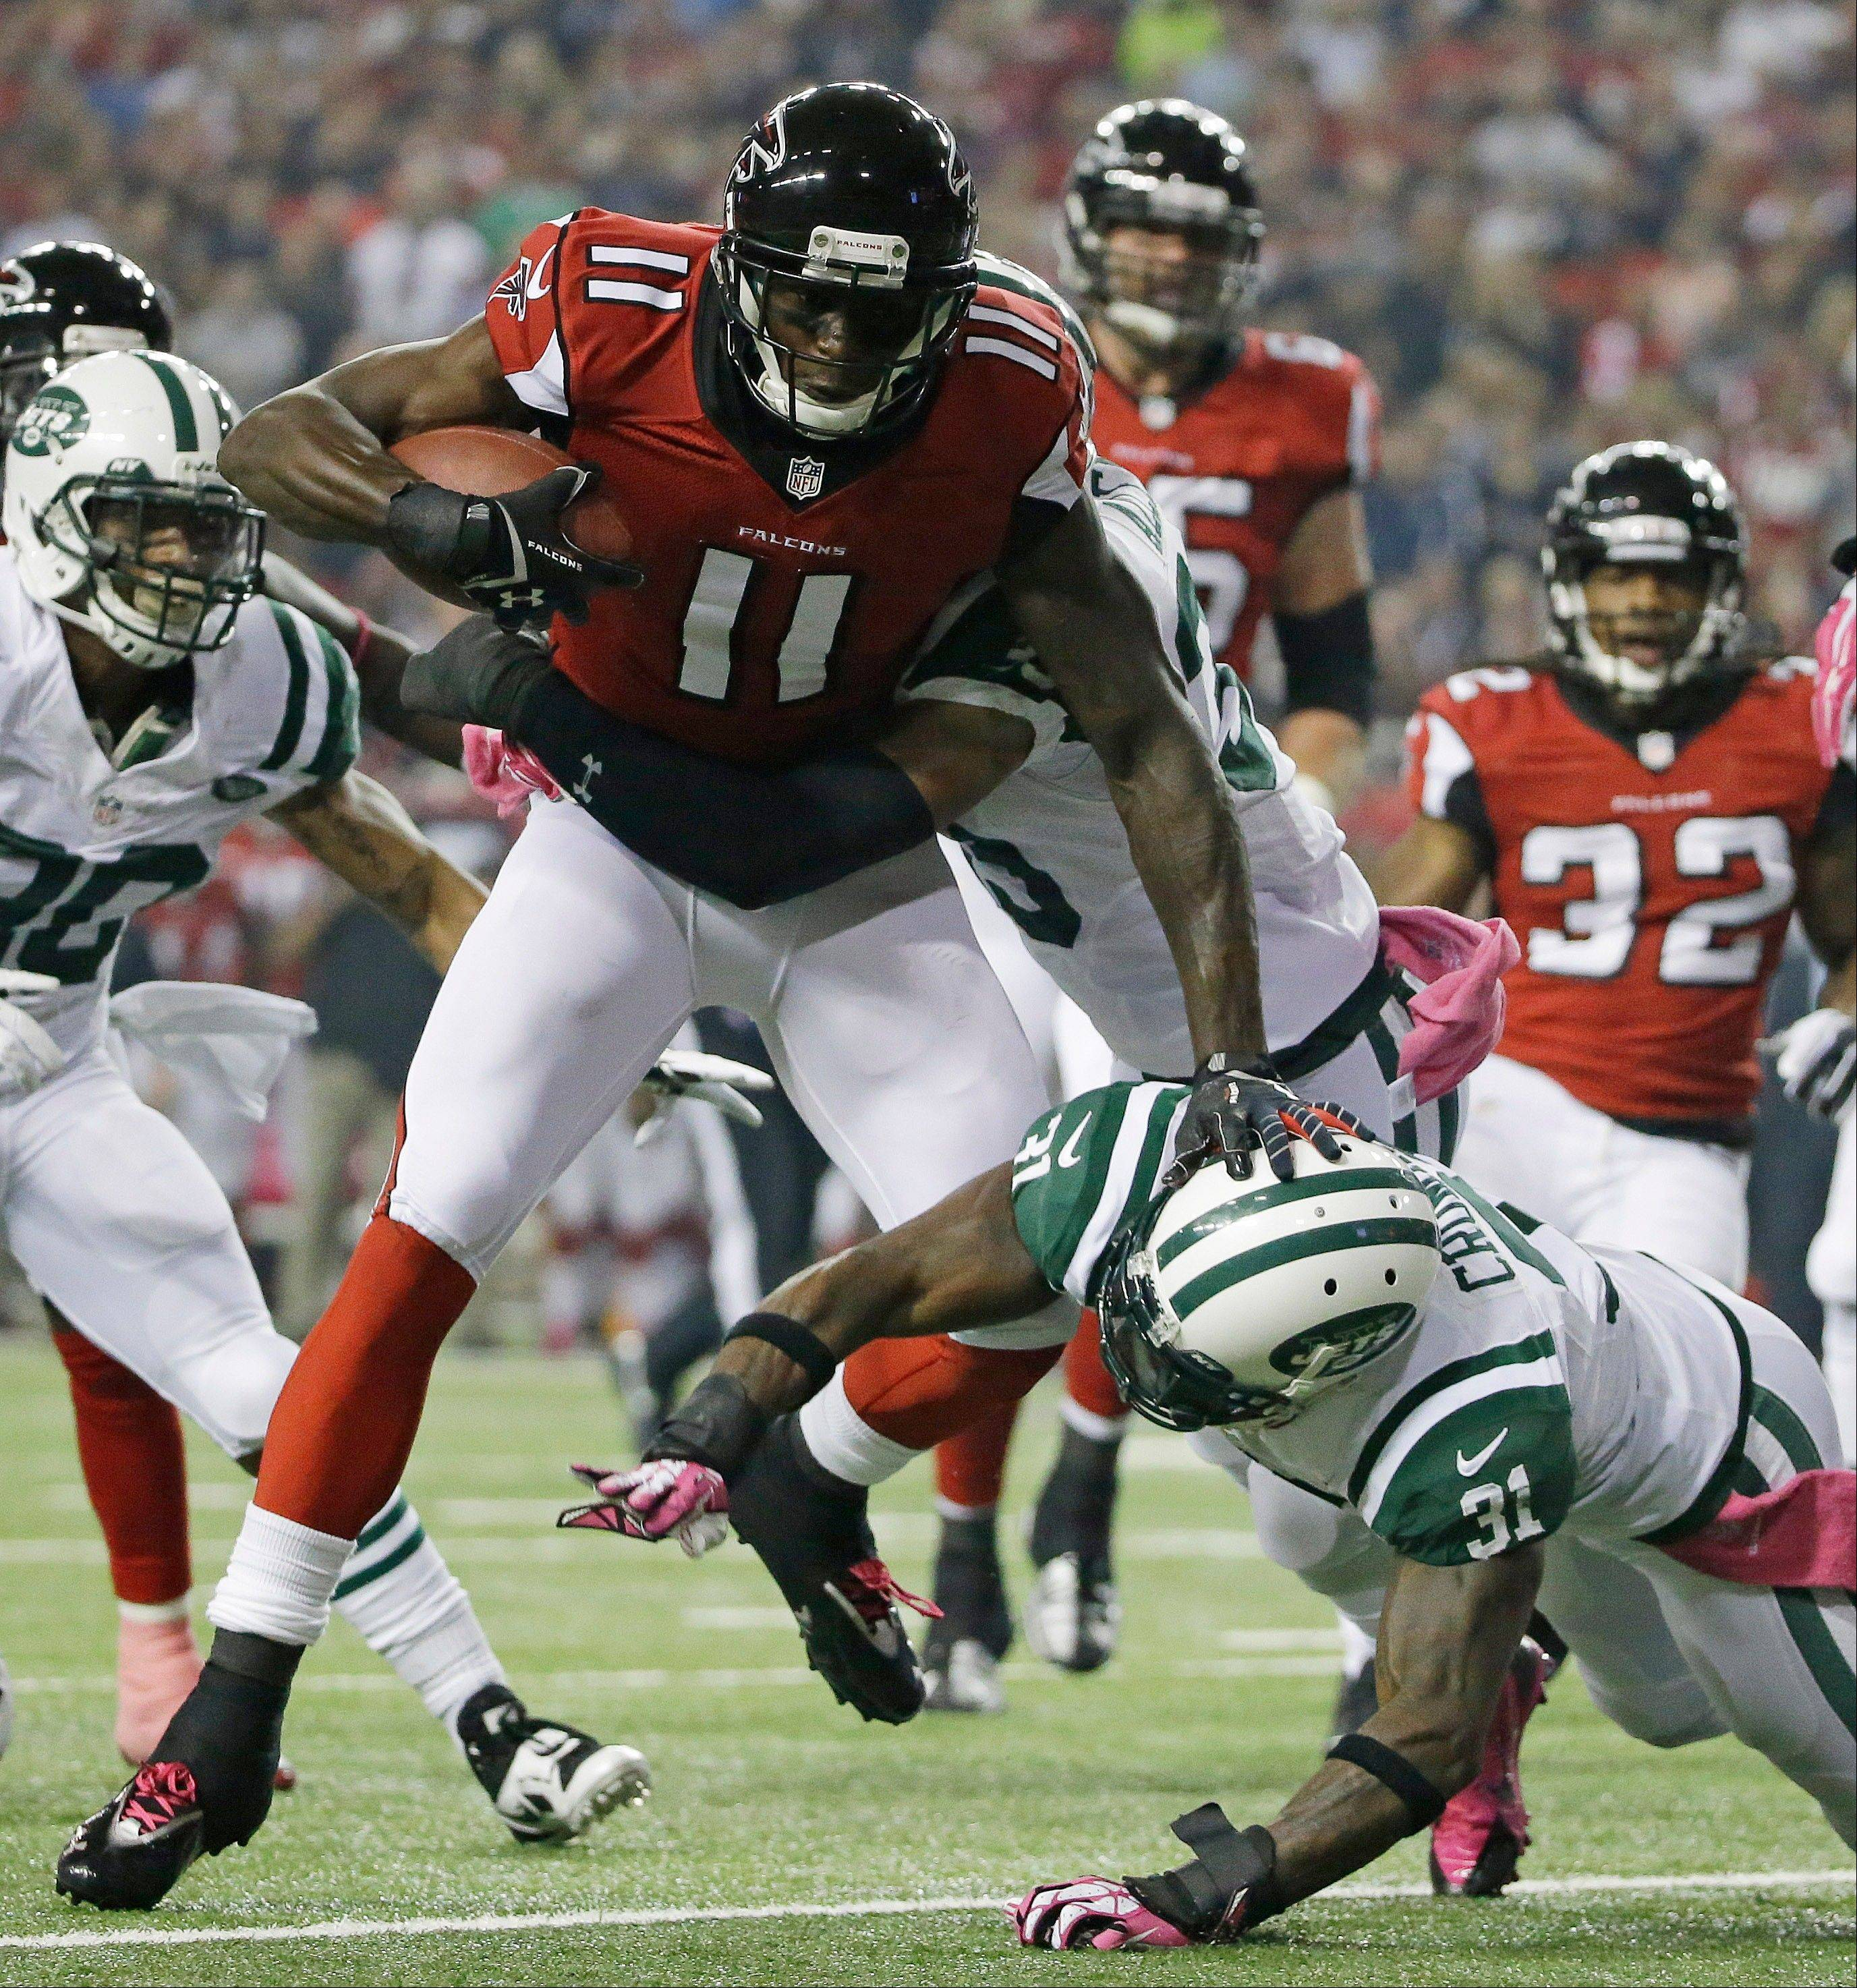 Atlanta Falcons wide receiver Julio Jones (11) is hit by New York Jets free safety Antonio Allen (39) and New York Jets cornerback Antonio Cromartie (31) during the first half of an NFL football game, Monday, Oct. 7, 2013, in Atlanta.